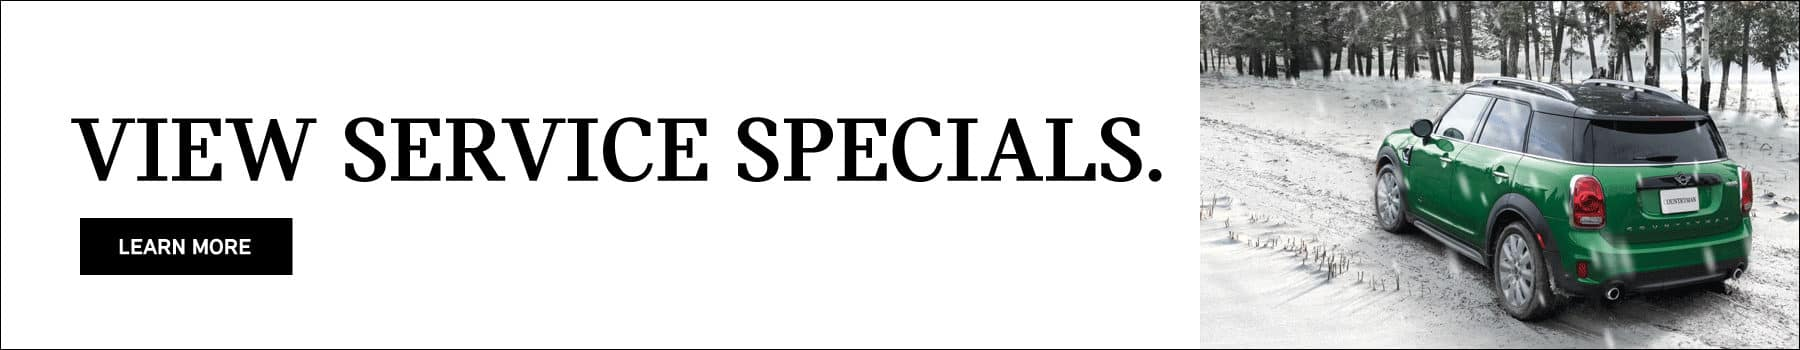 VIEW OUR SERVICE SPECIALS.